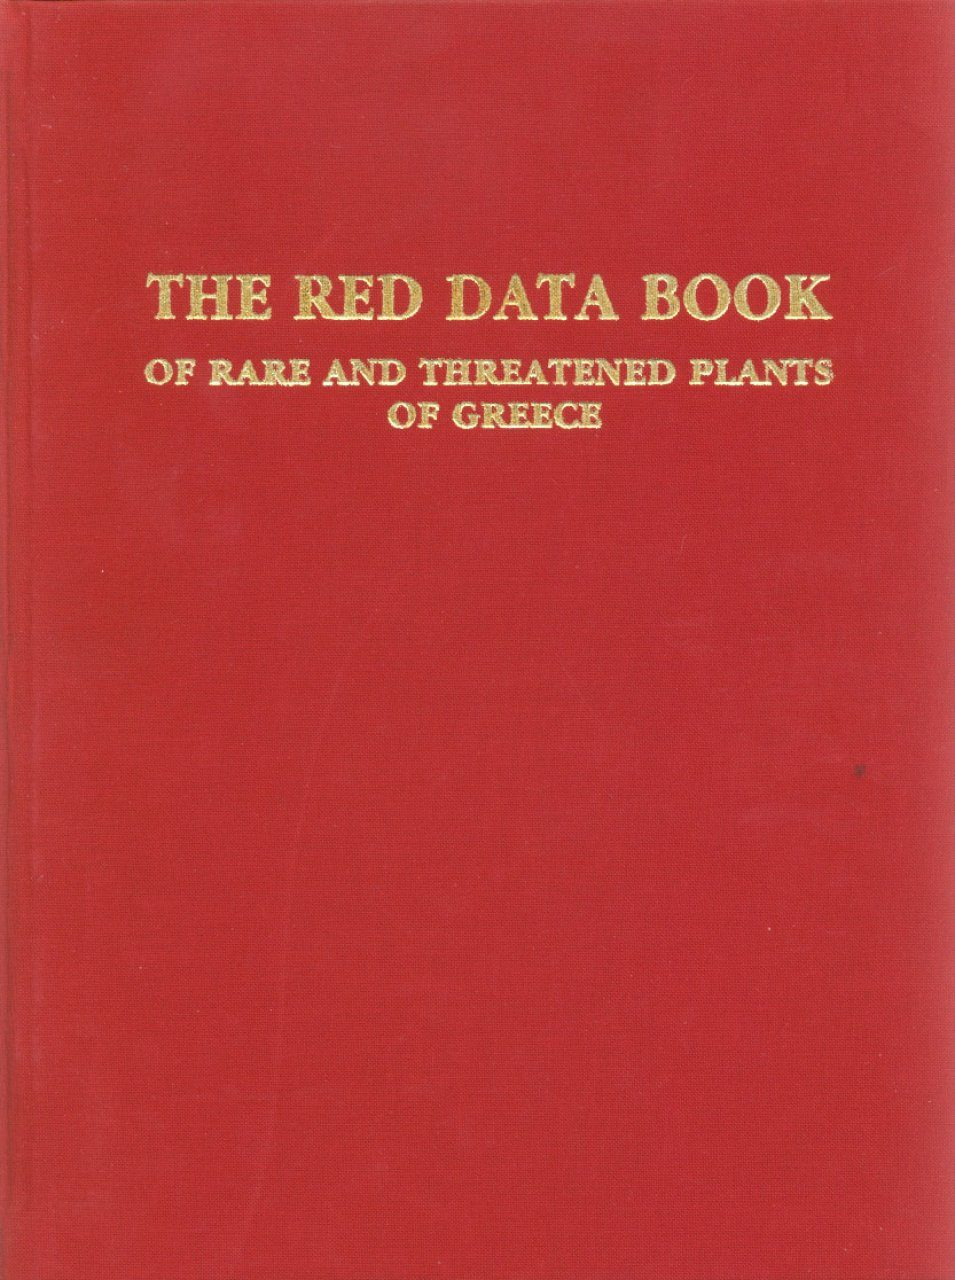 The Red Data Book of Rare and Threatened Plants of Greece